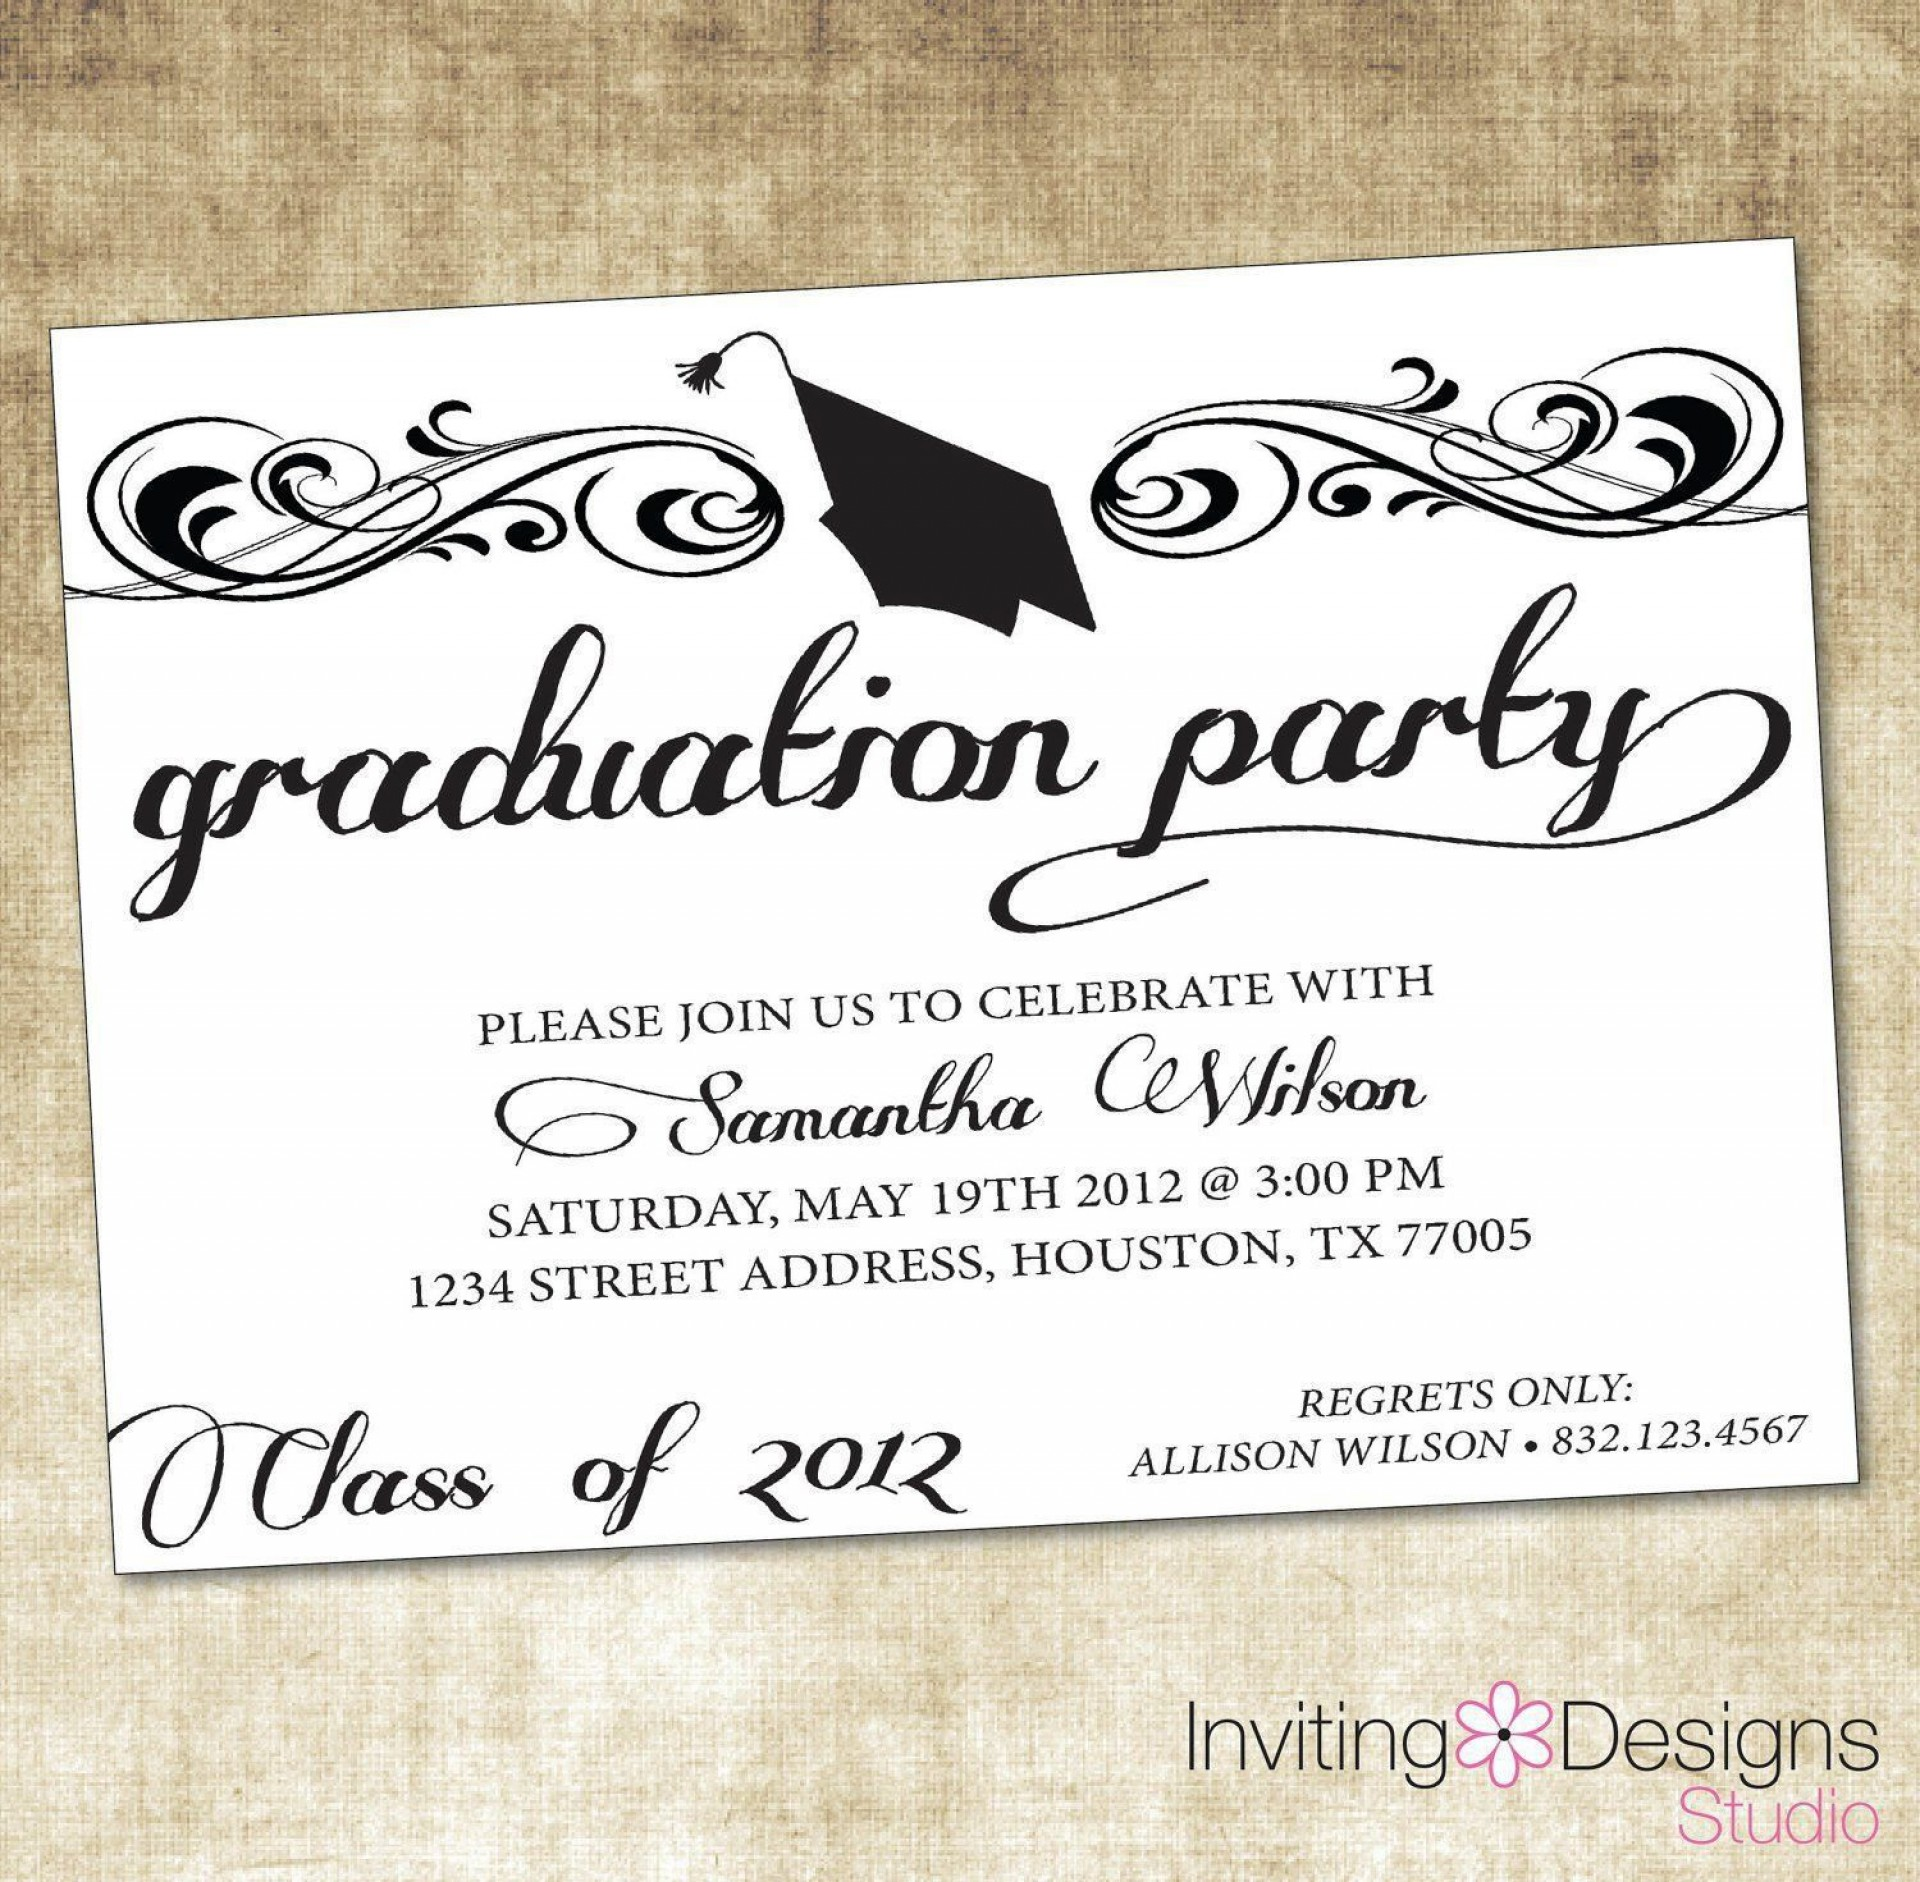 009 Exceptional Microsoft Word Graduation Party Invitation Template Concept 1920